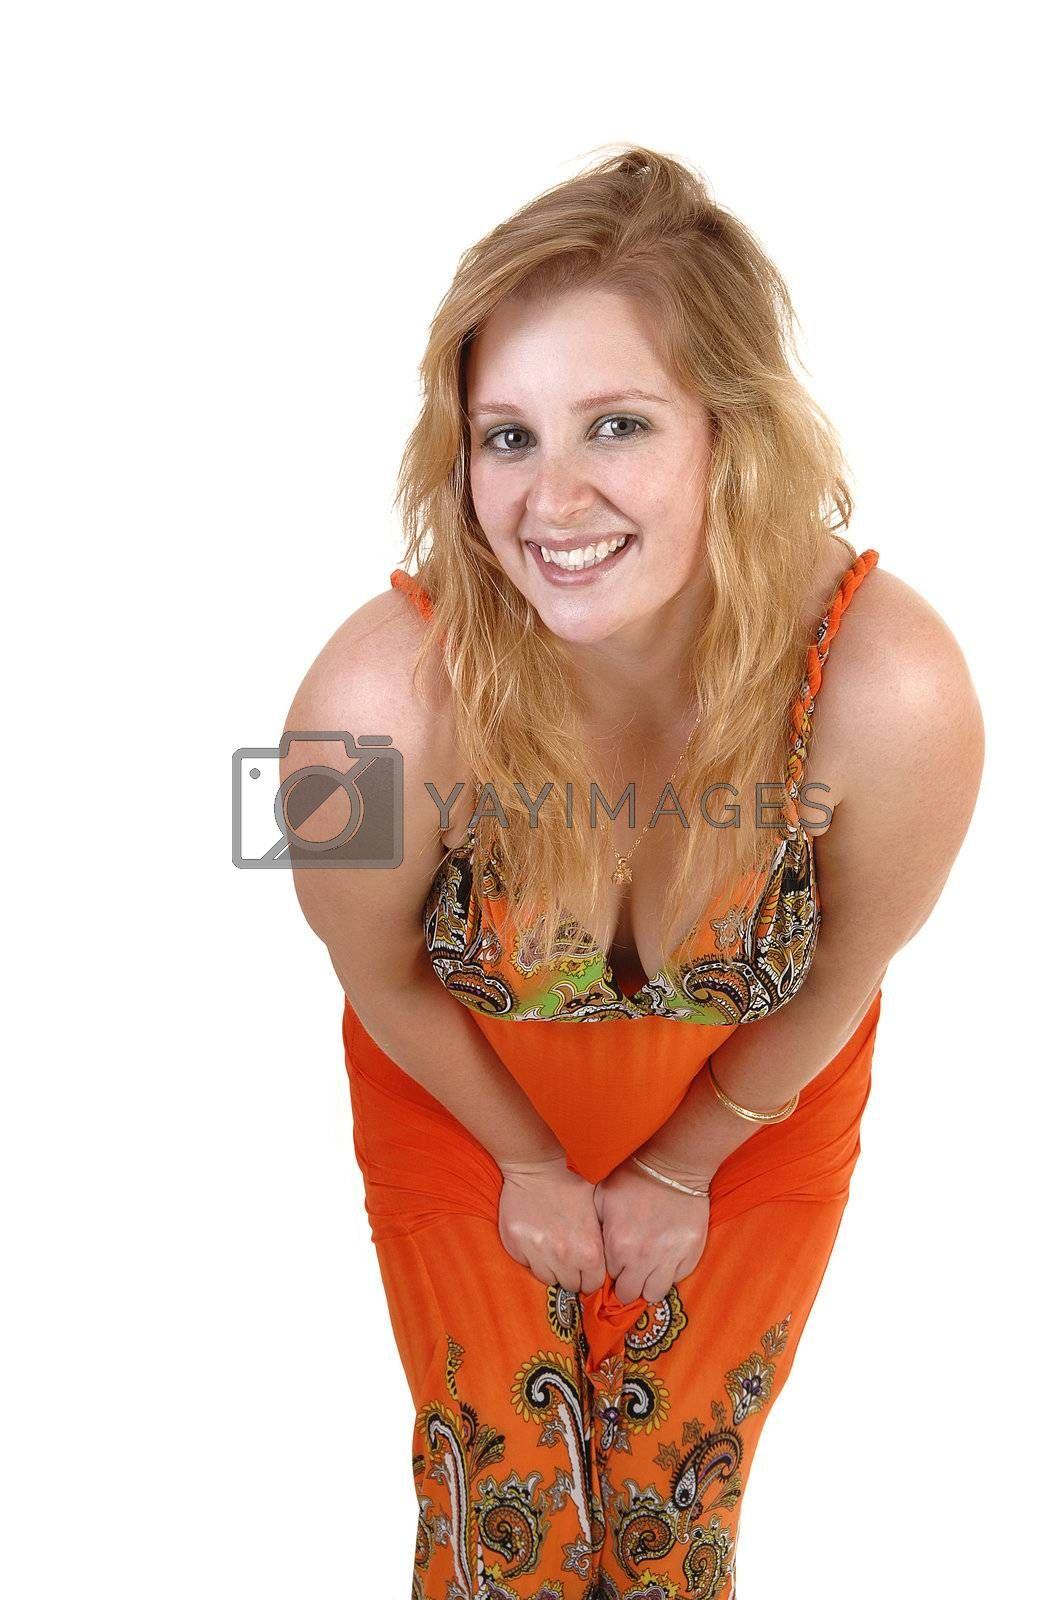 A lovely teenage girl with blond hair and a colorful orange long dress standing and bending down to the camera, over white background.